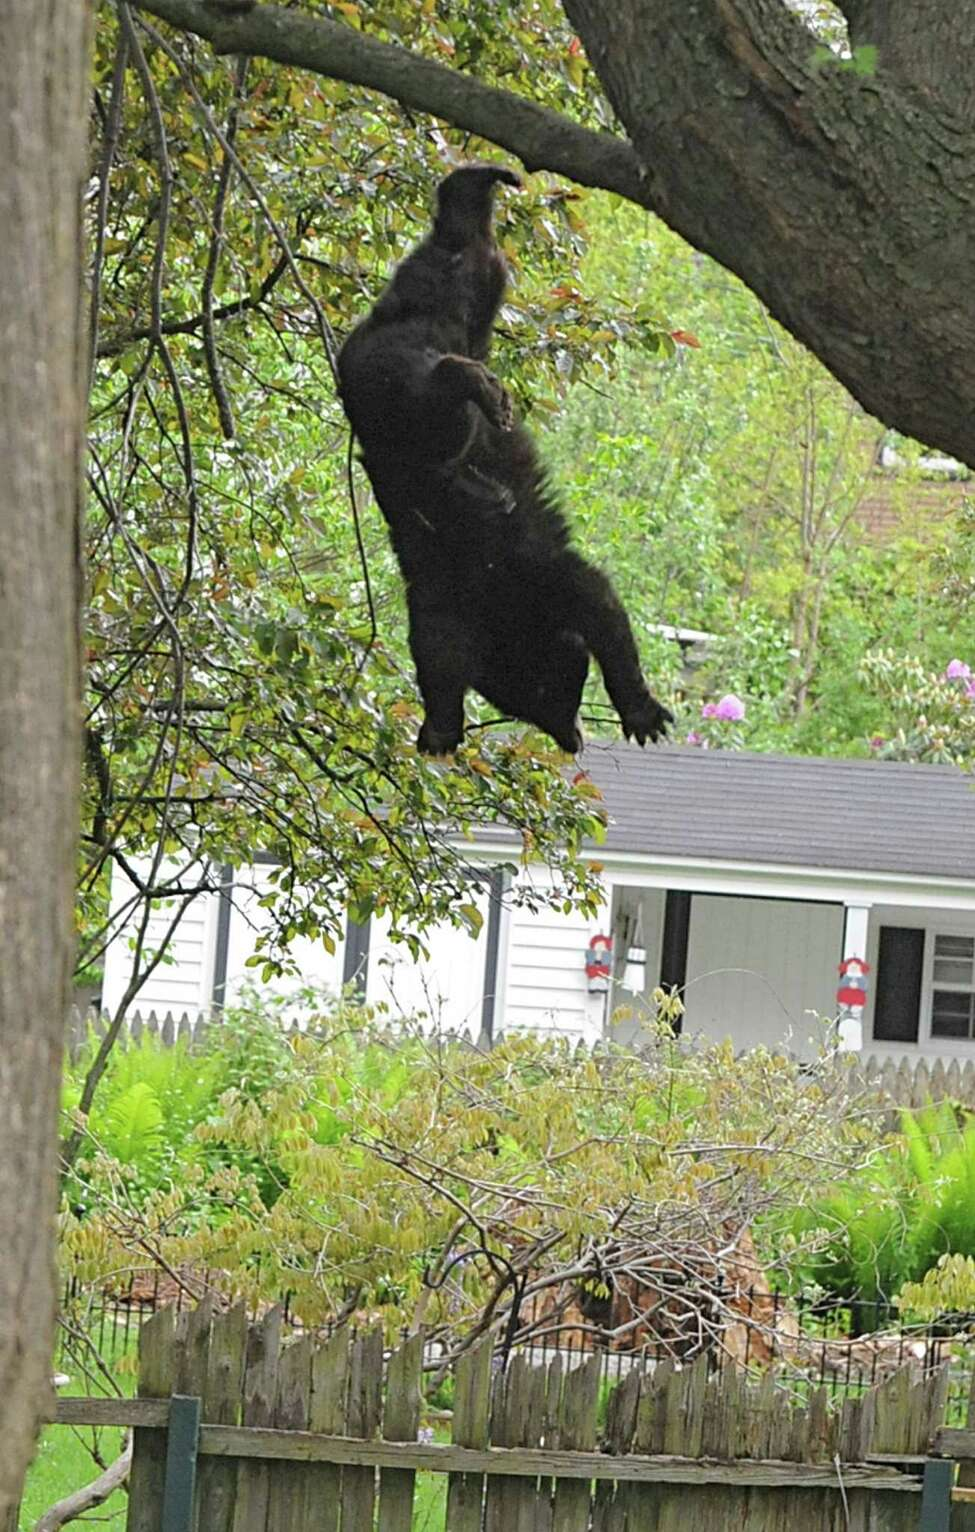 In this archive photo, after being shot with a tranquilizer gun, a sedated bear falls to the ground near North College St. in the Stockade Thursday, May 10, 2012 in Schenectady, N.Y. (Lori Van Buren / Times Union)